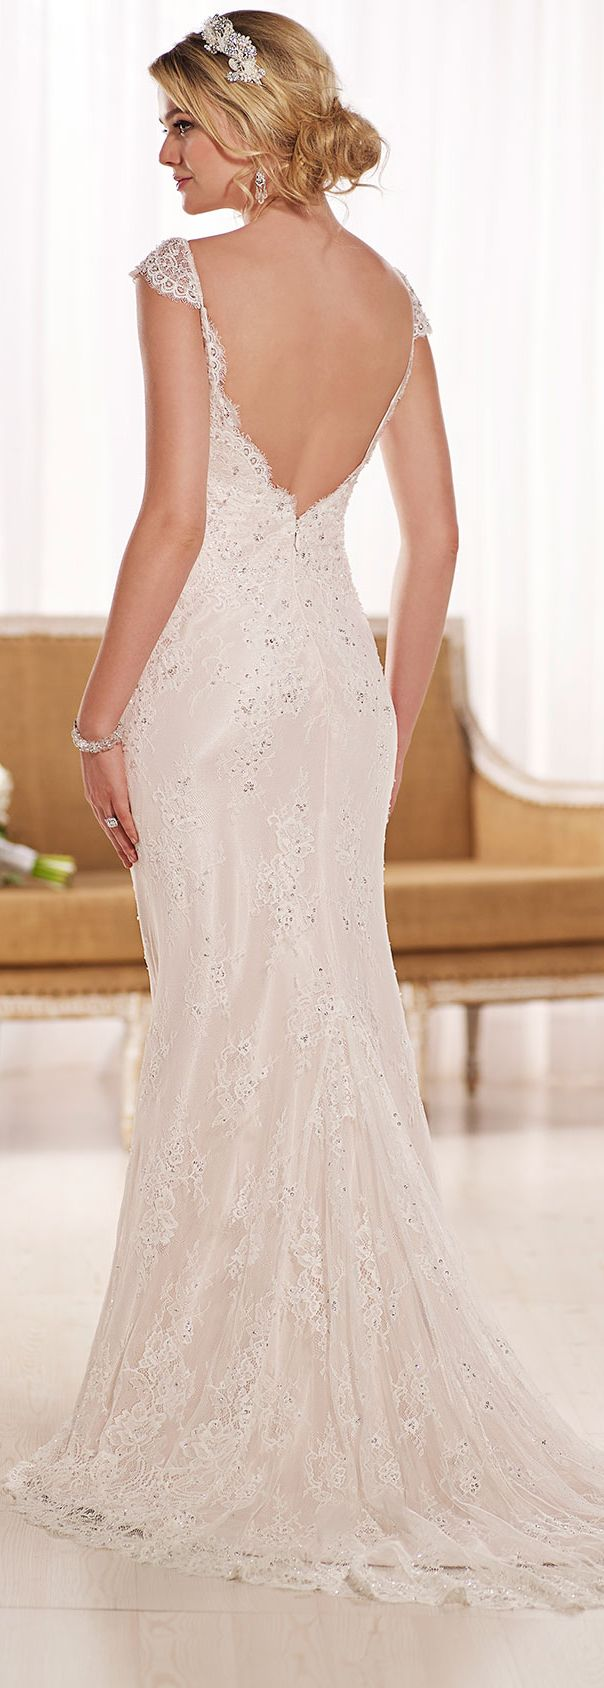 Elegant wedding dress ladies!!!